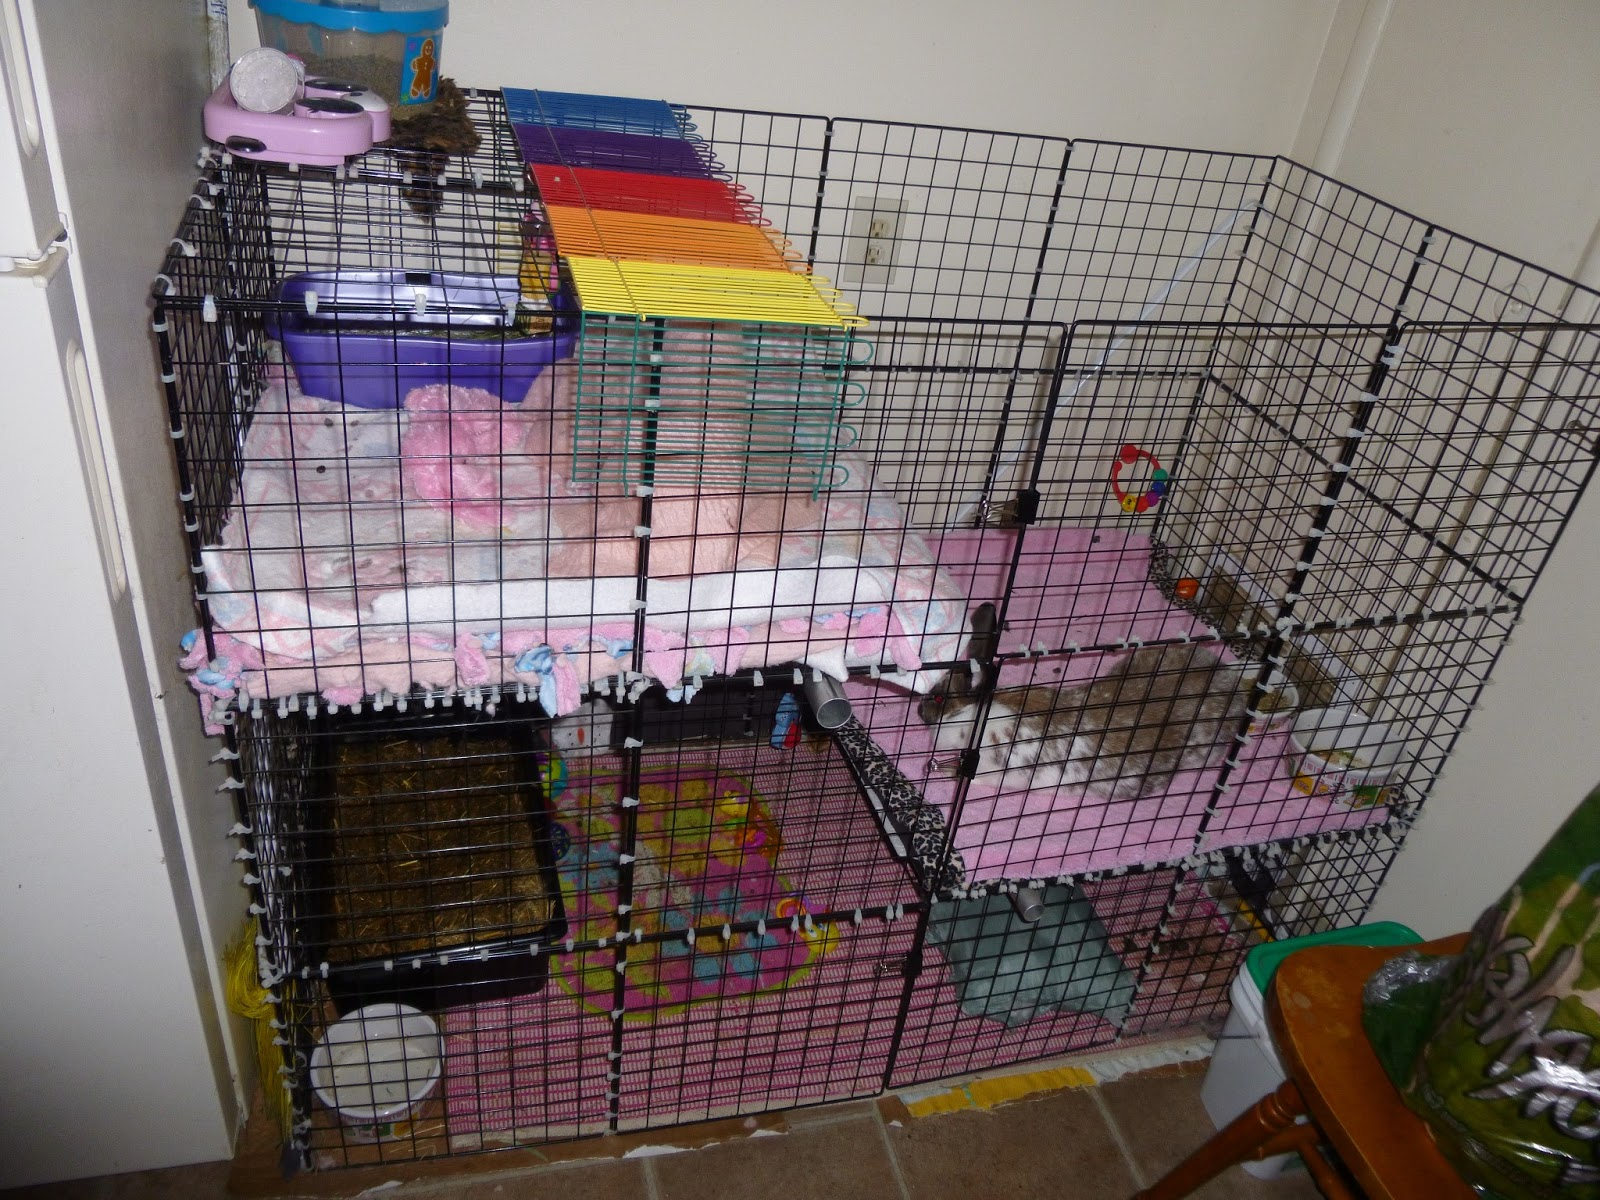 Homemade Chinchilla Cages Plans The homemade rabbit condo is